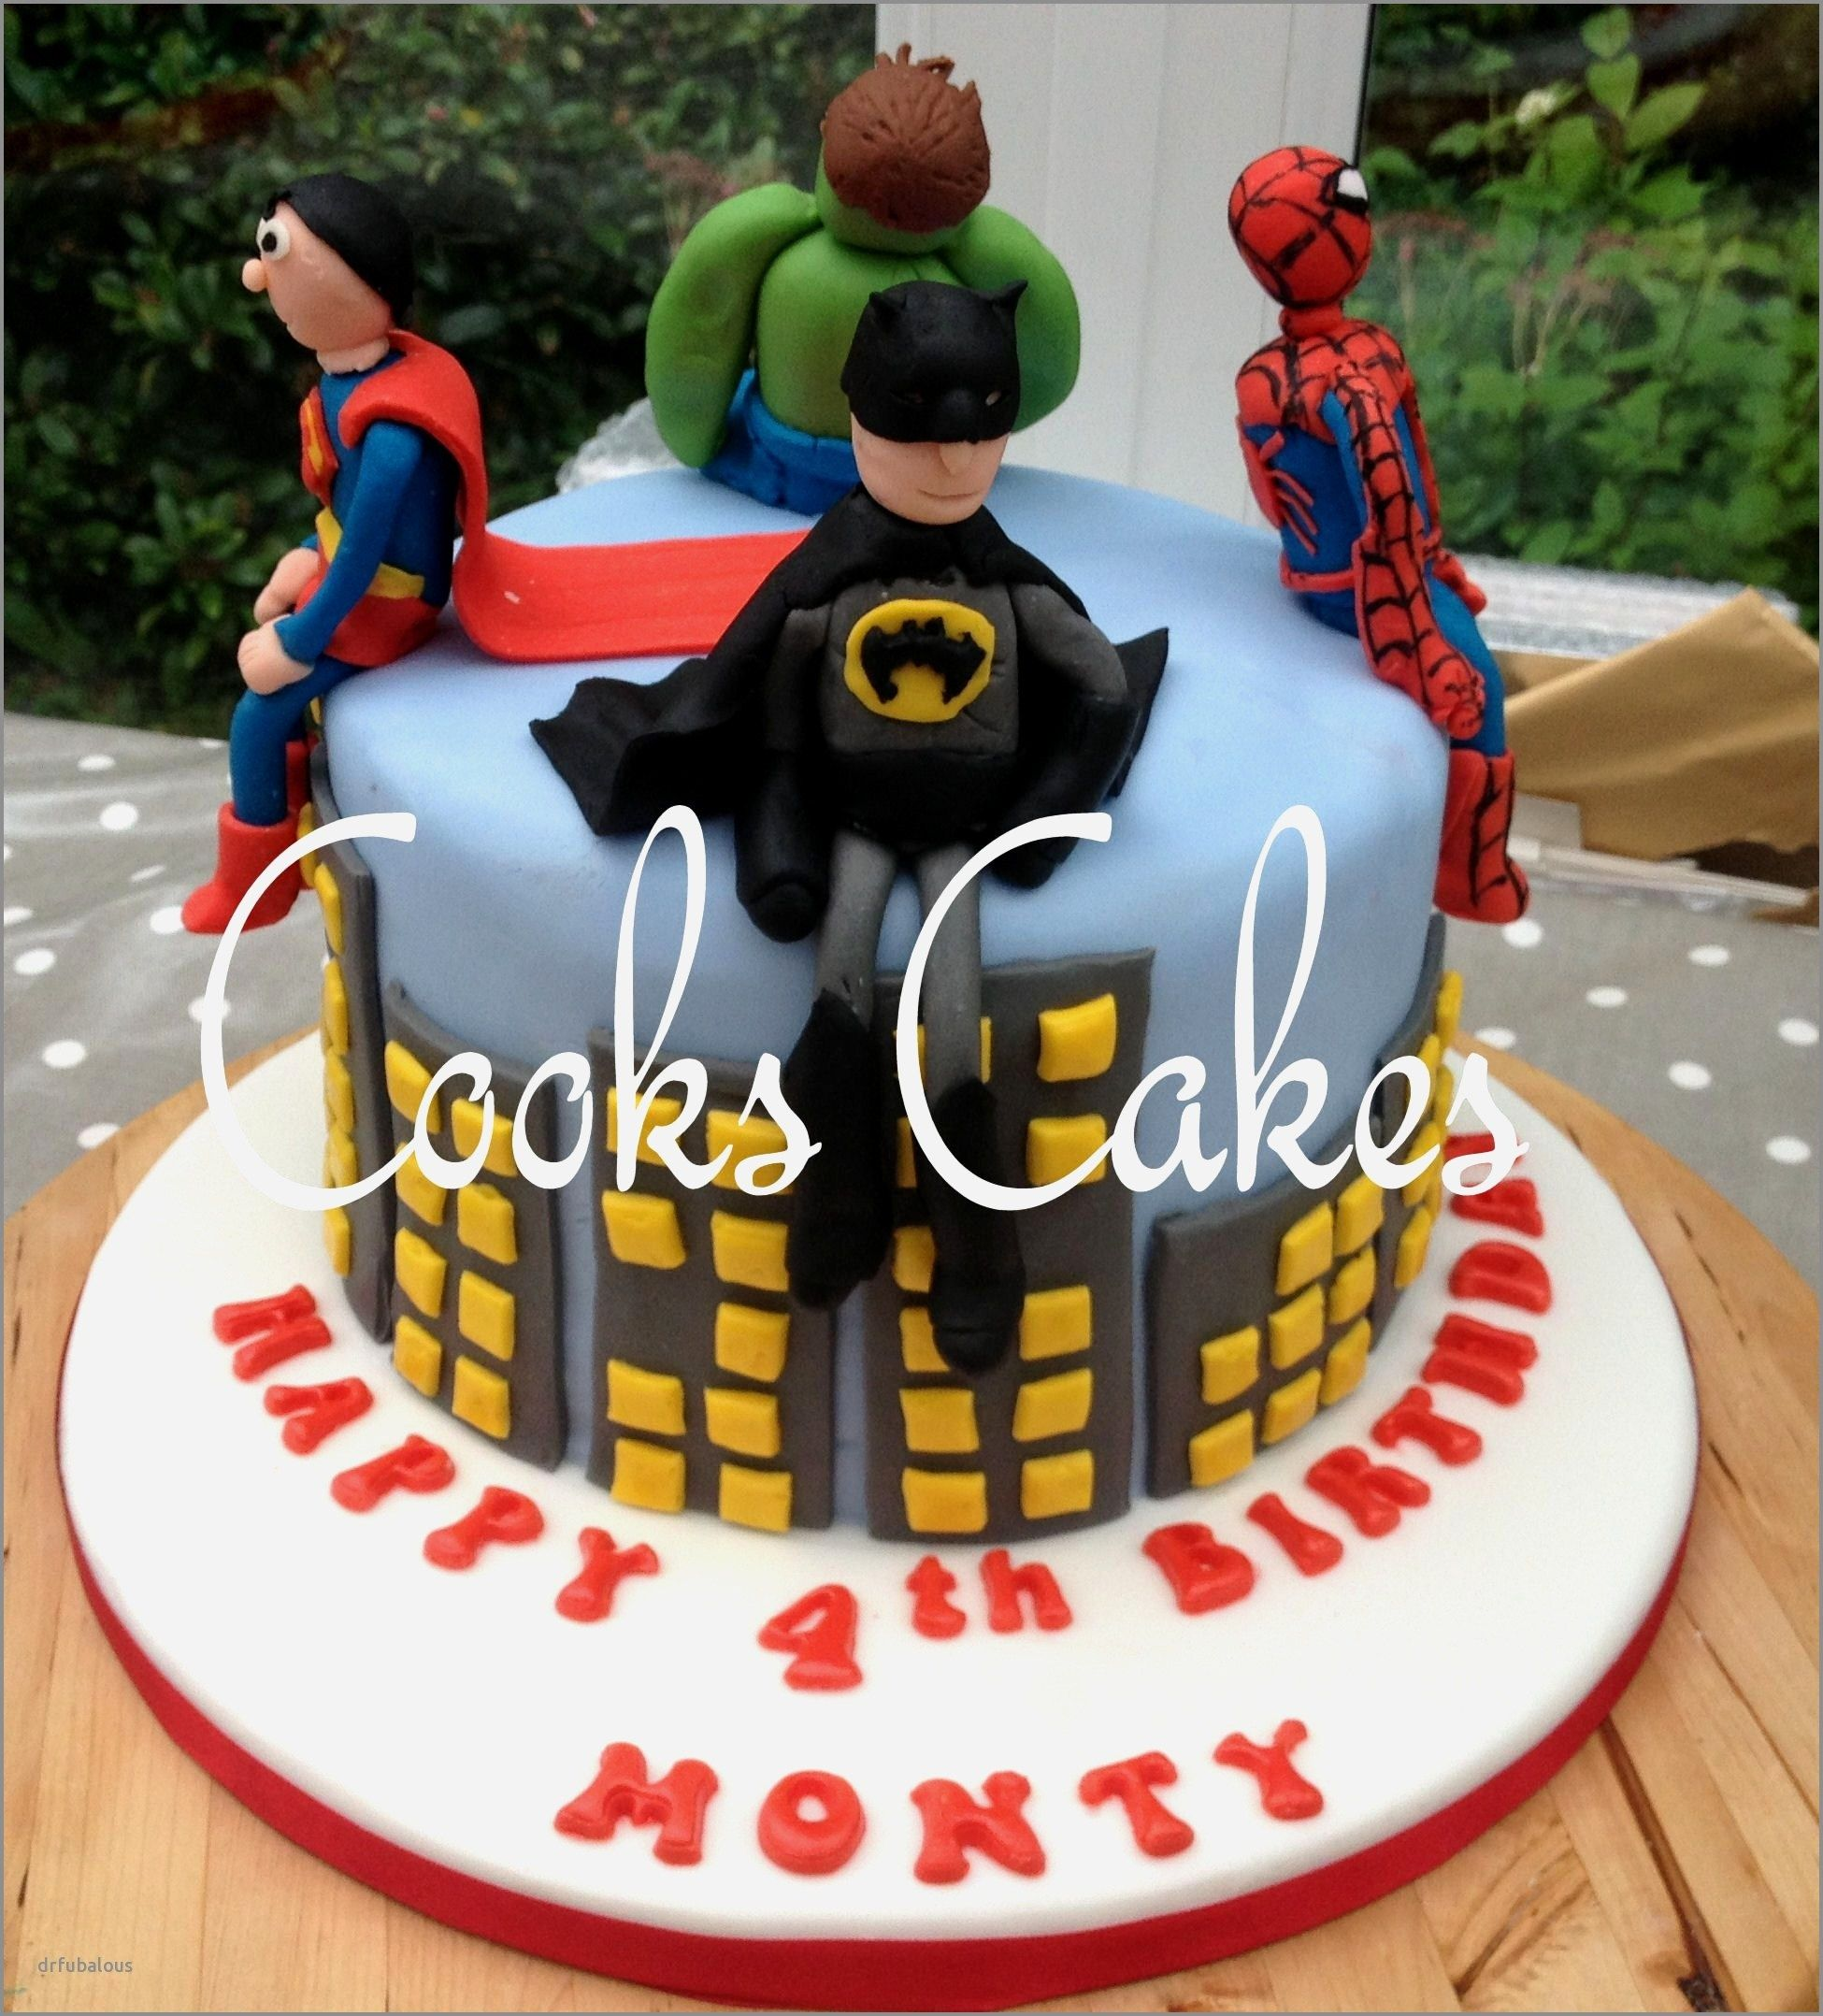 30 Awesome Photo Of Batman Birthday Cake Ideas 31 Beautiful Images For 3 Year Old Boy